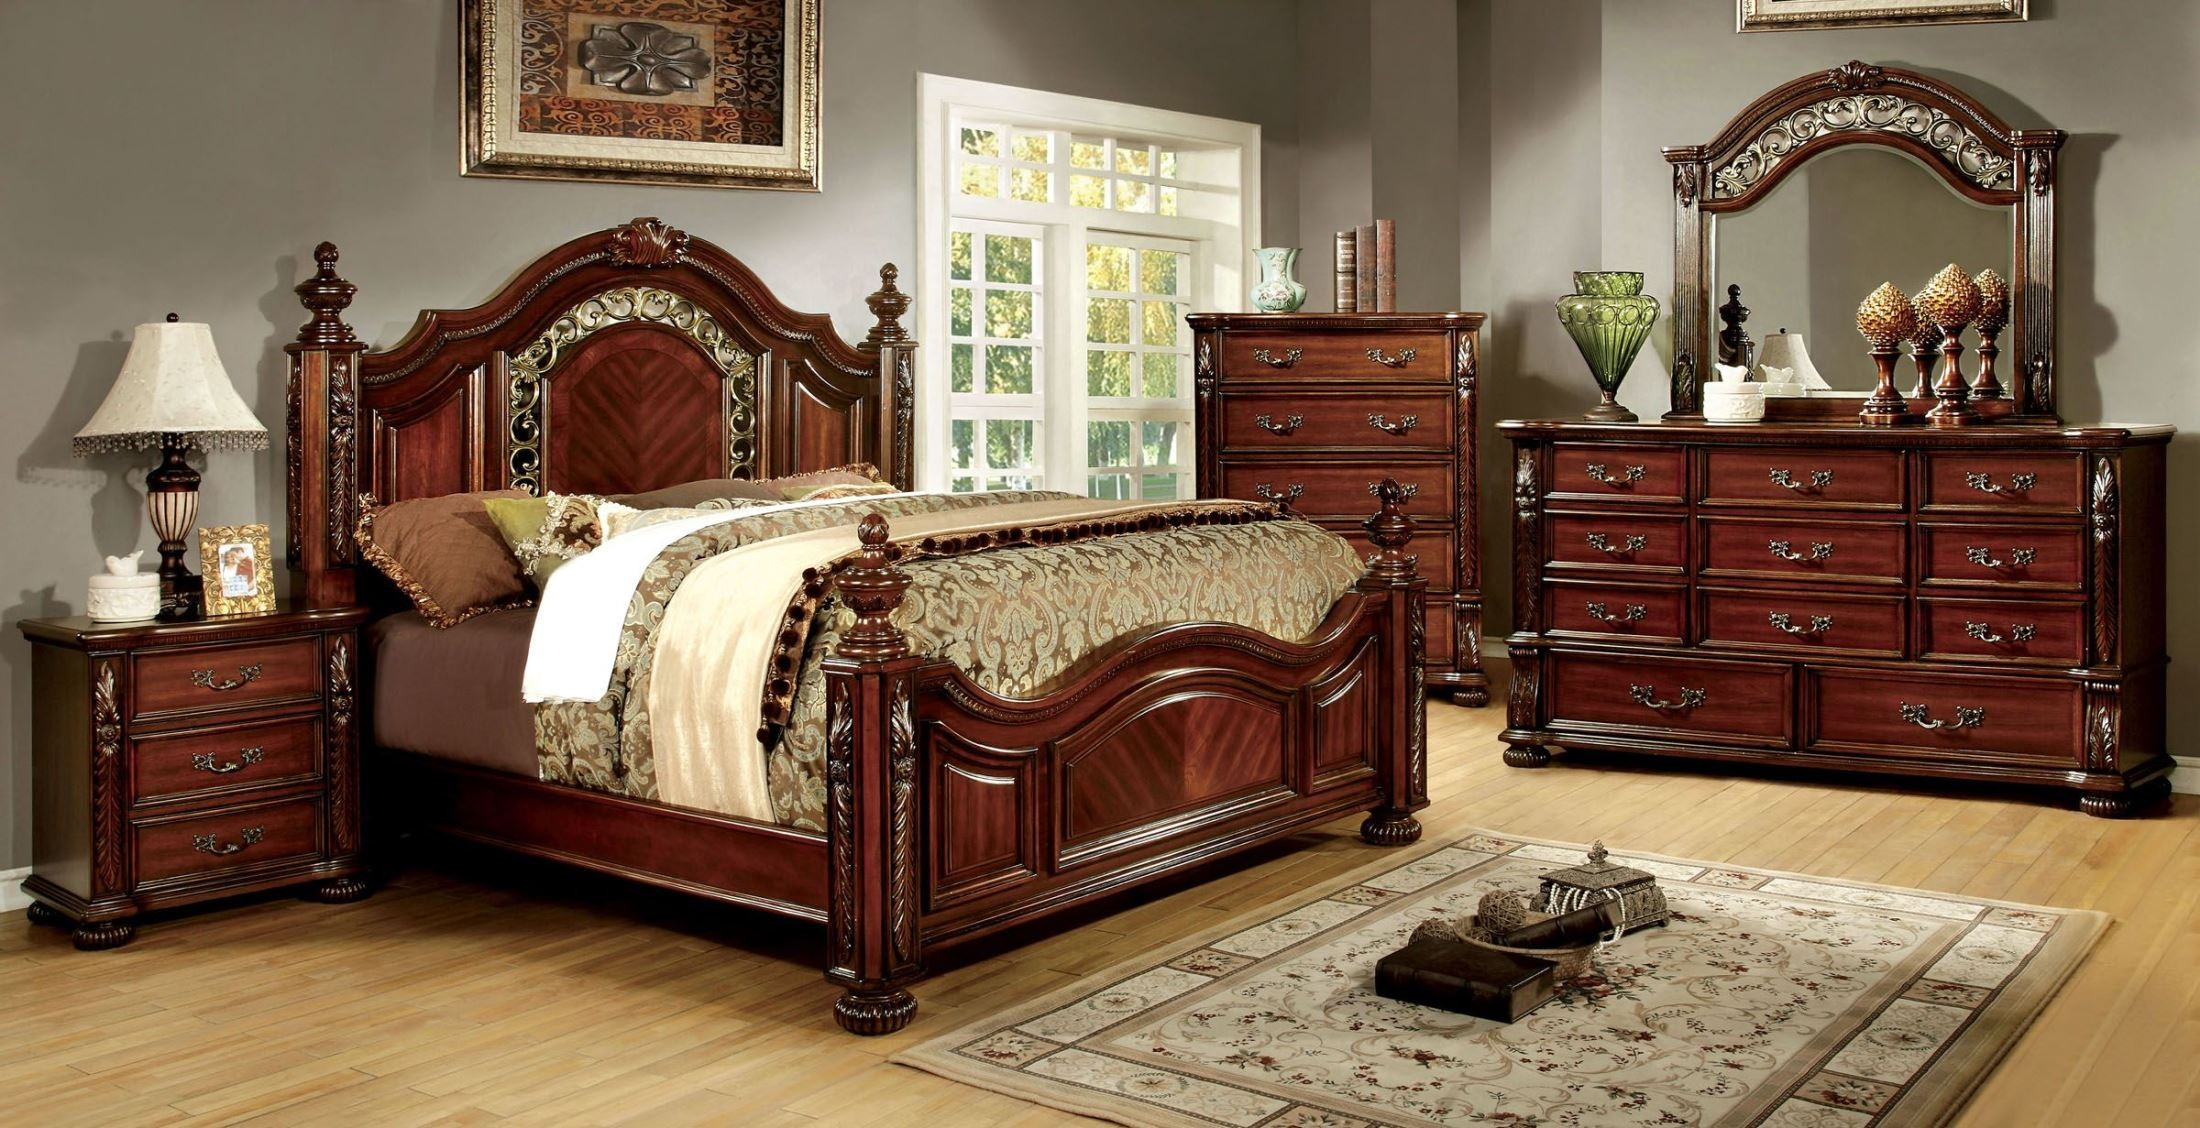 Arthur Brown Cherry King Poster Bed From Furniture Of America